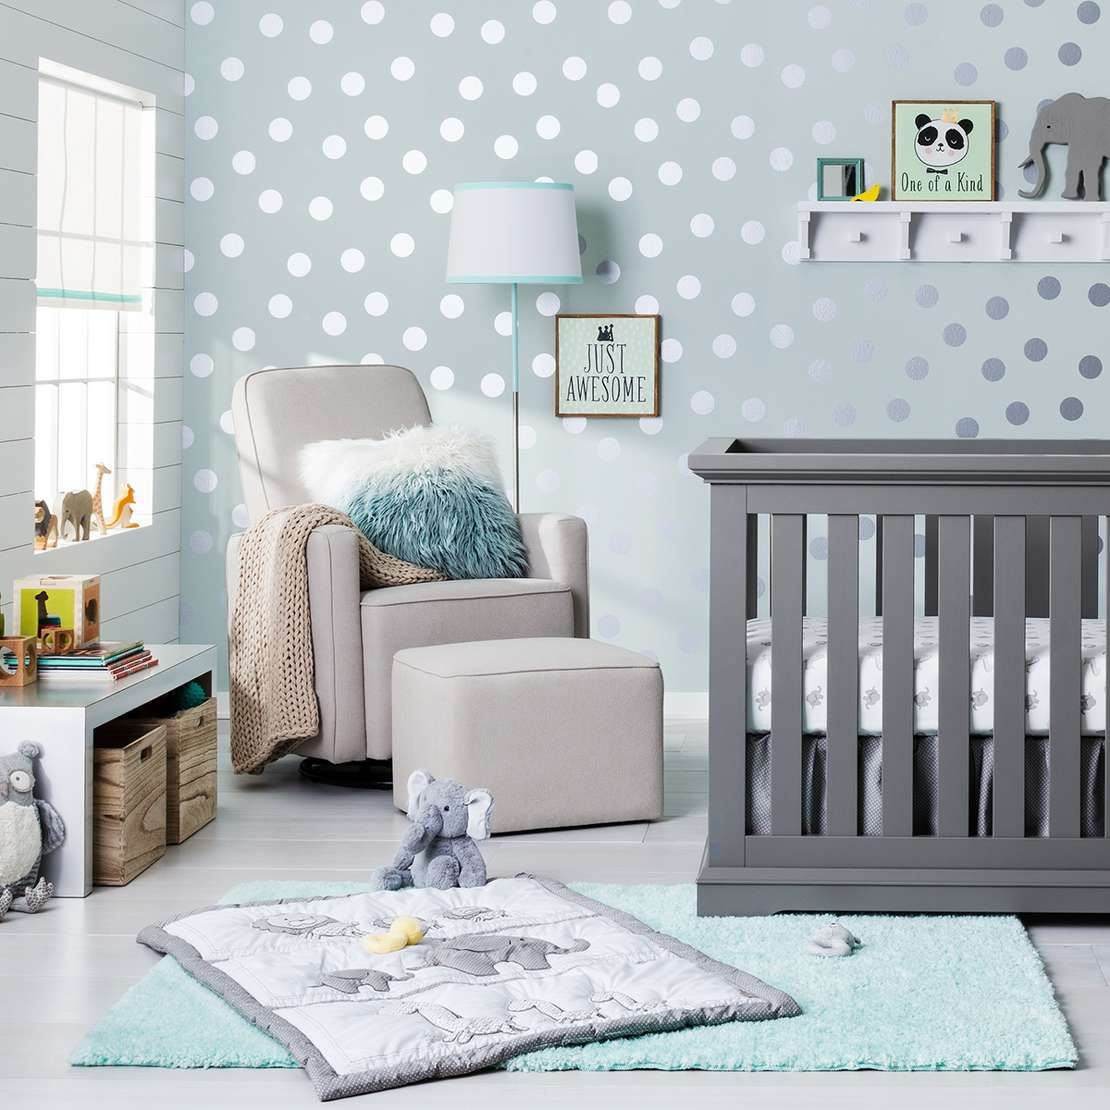 Nursery Ideas And Décor To Inspire You: Shop Target For Nursery Ideas, Design & Inspiration You